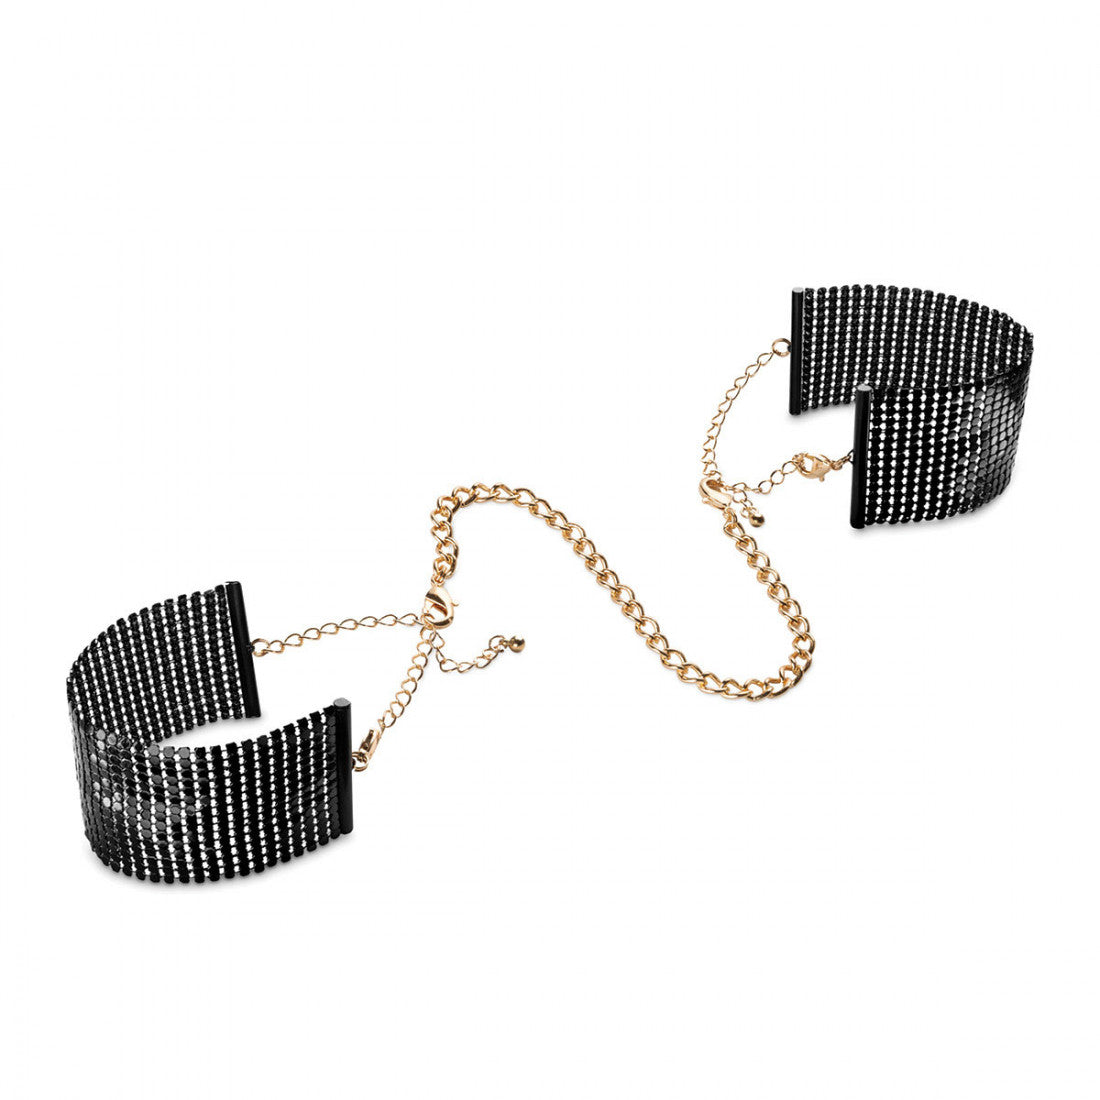 Bijoux Indiscrets Desir Metallique Mesh Handcuffs - Made For Curves